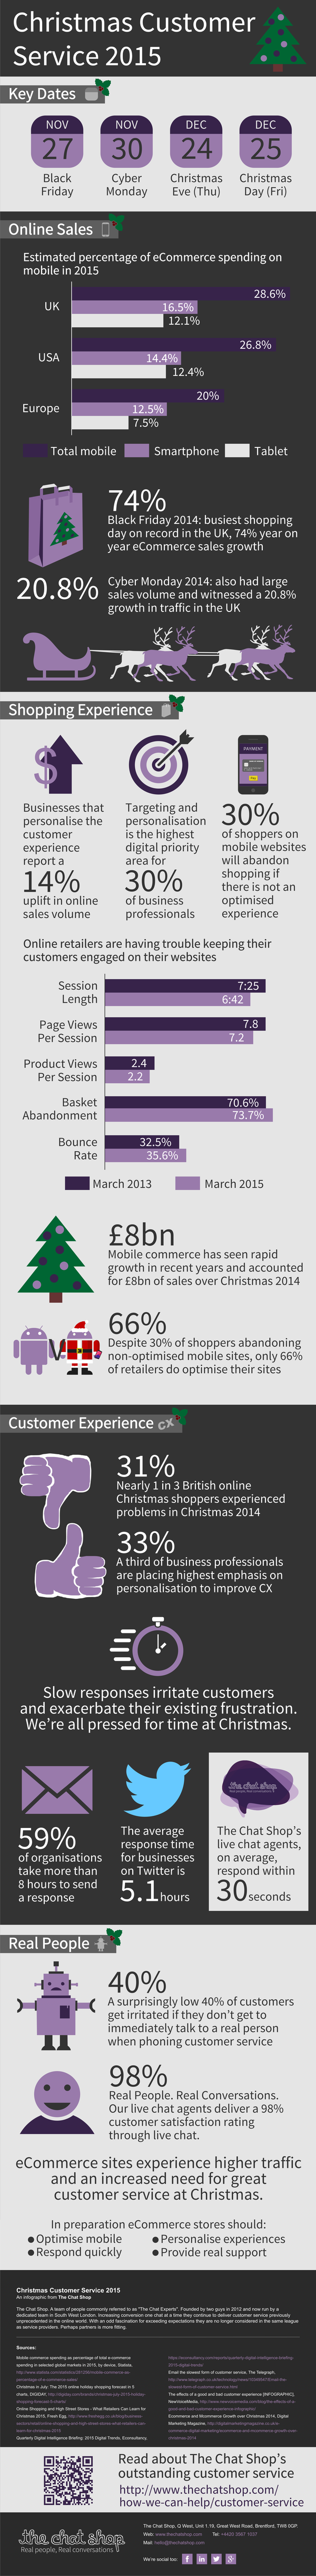 Christmas Customer Service 2015 Infographic